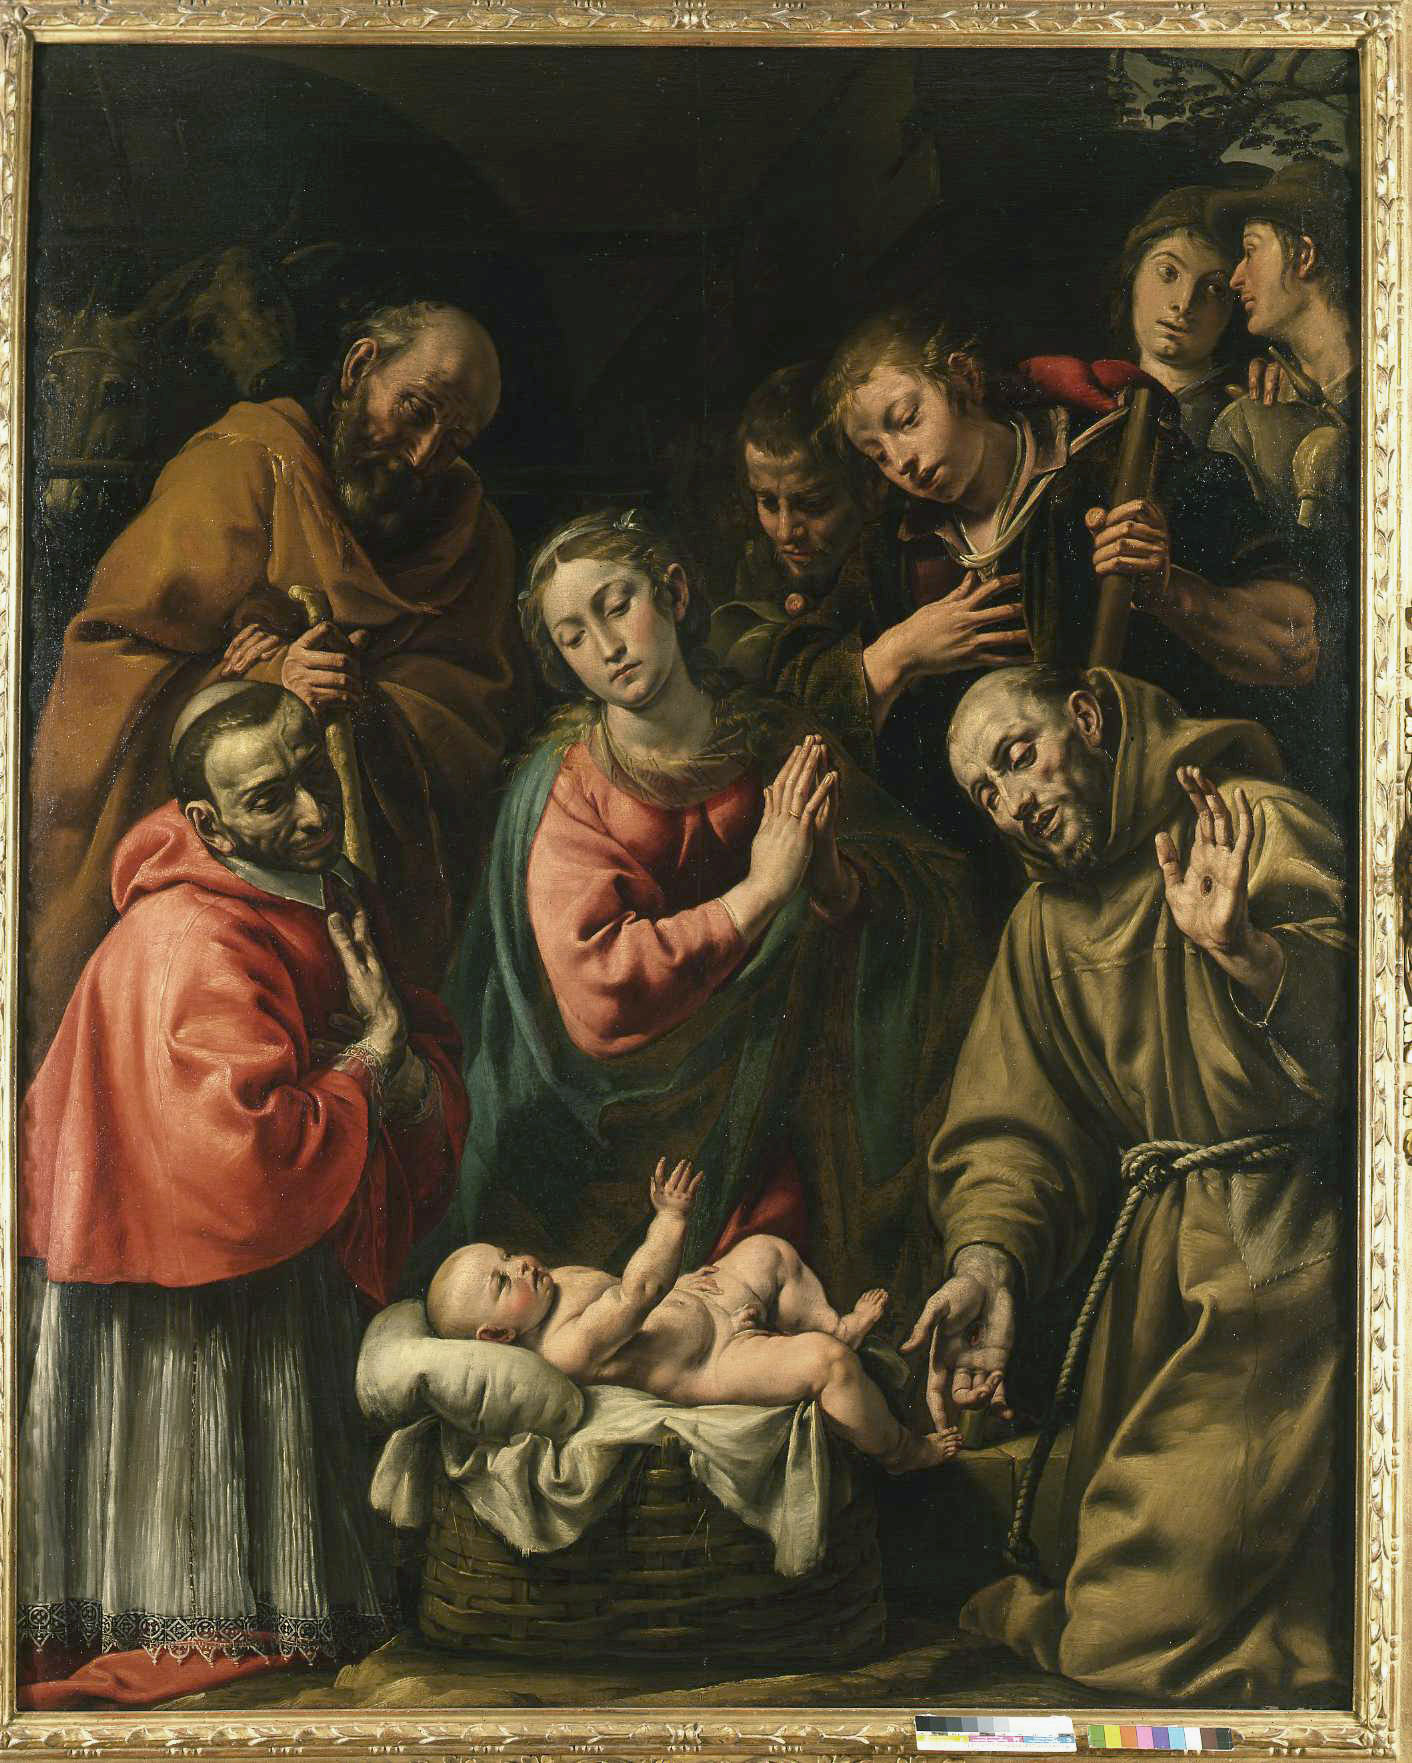 The Adoration of the Shepherds with San carlo Borromeo